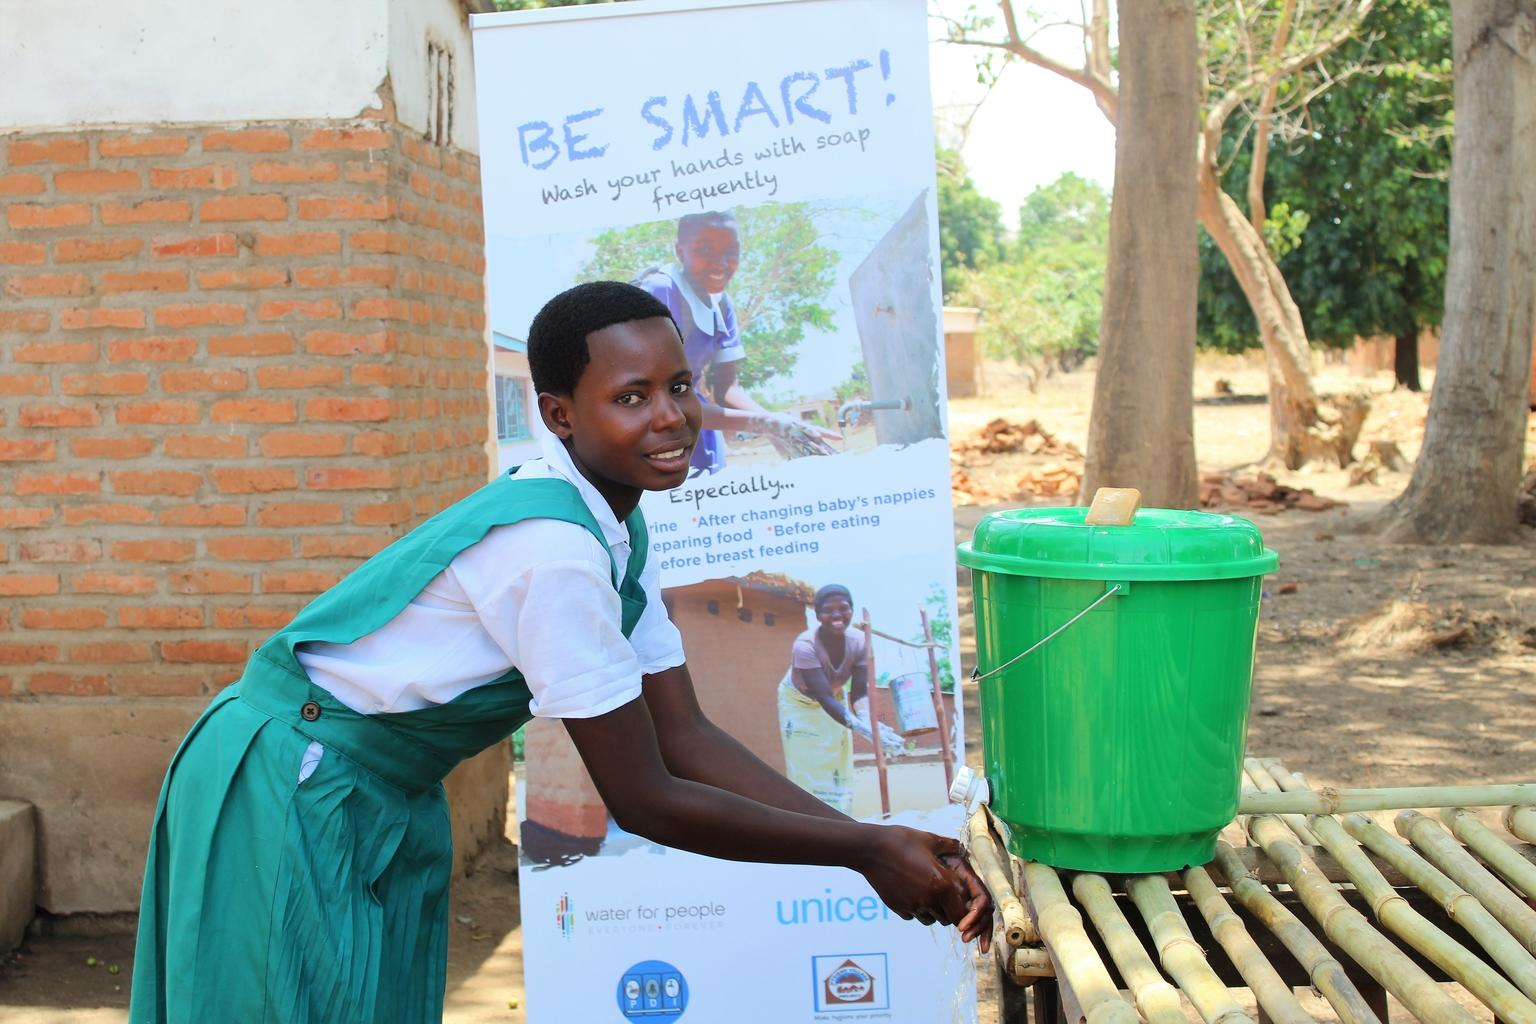 Washing your hands with soap and water like this student is one of the most effective ways to prevent #COVID19.  UNICEF is working to provide every child with a source of safe water no matter who or where they are.  #COVID19Malawi #COVID19Prevention https://t.co/iZVvAJKNst